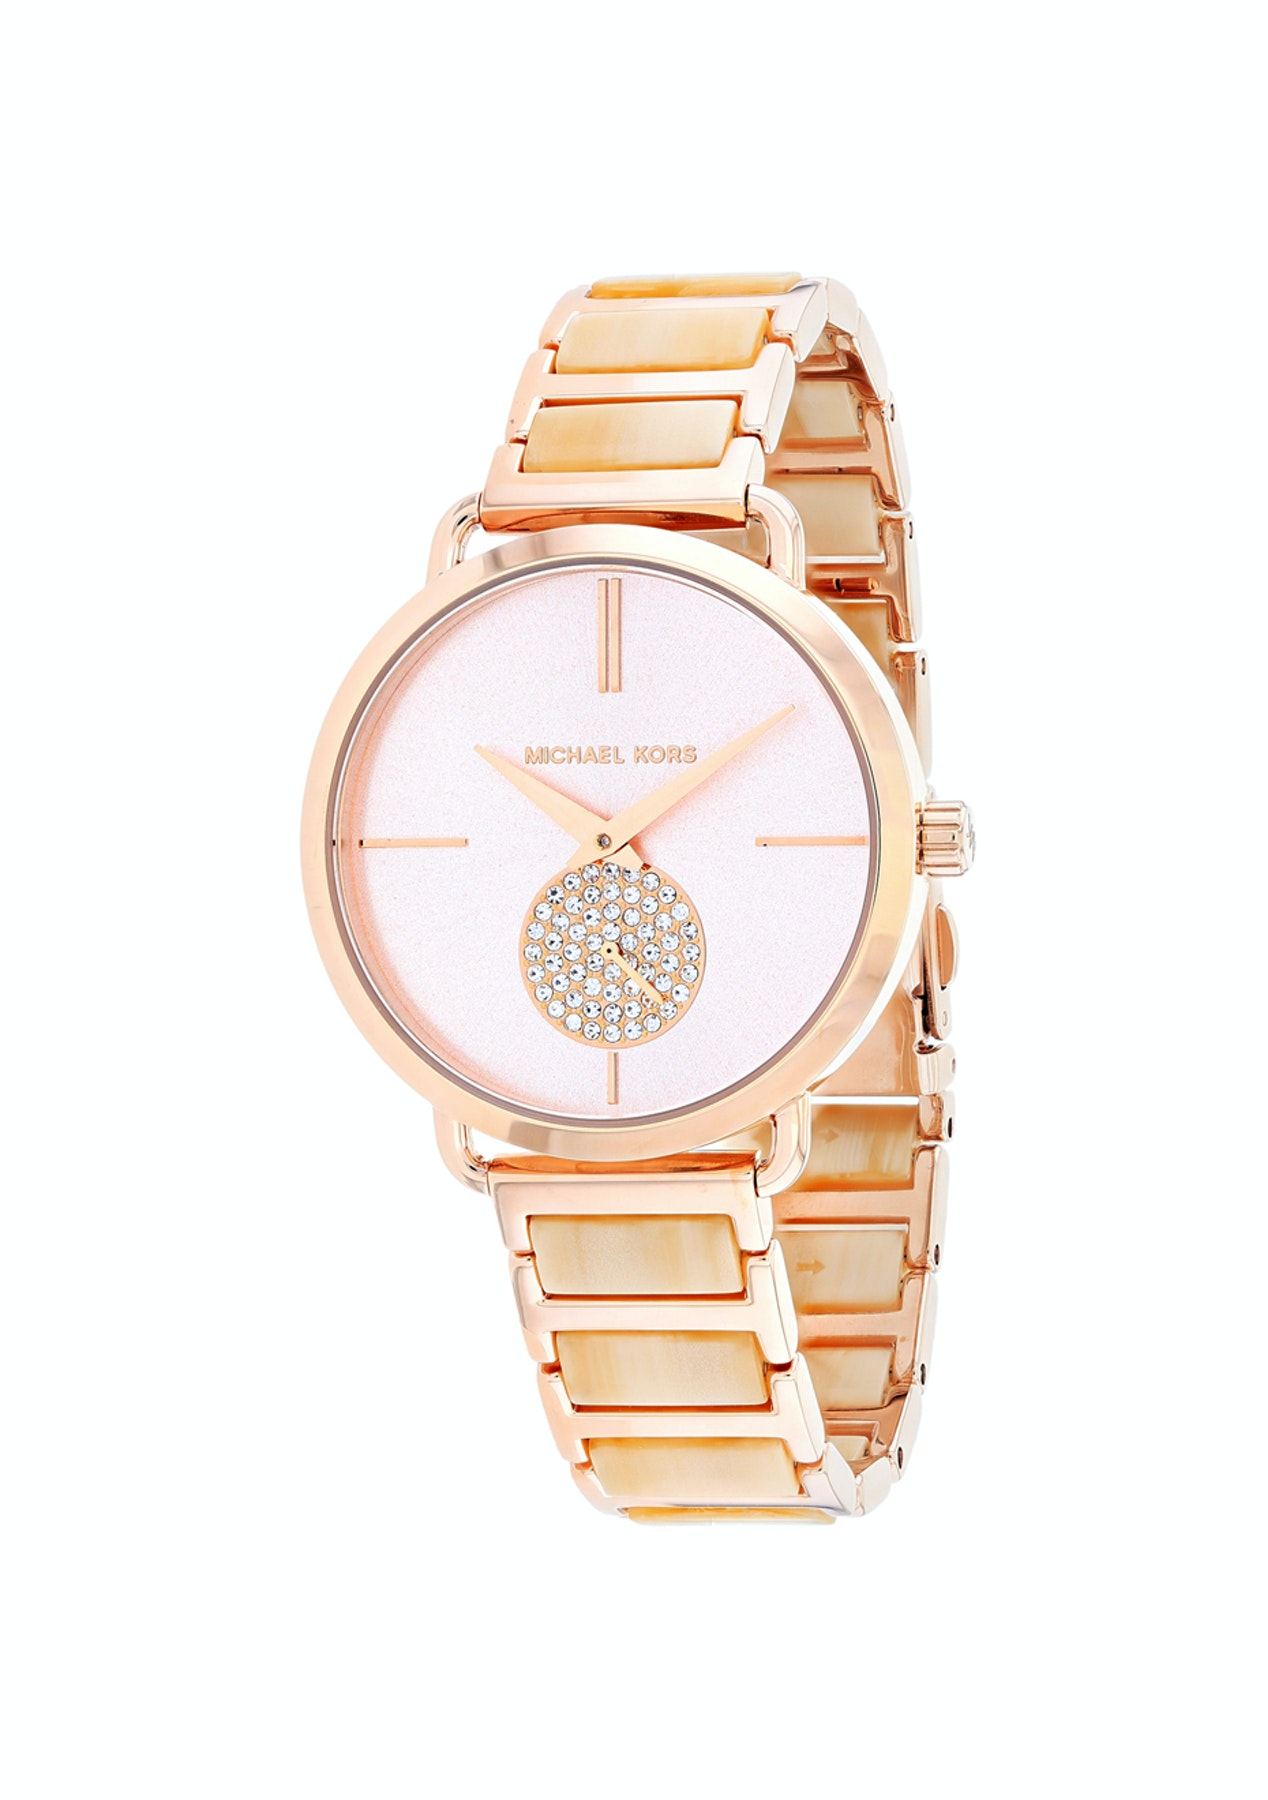 b34dbe763799 Michael Kors Women s Portia - Two tone Rose gold Champagne - Best Selling  Watches - Onceit